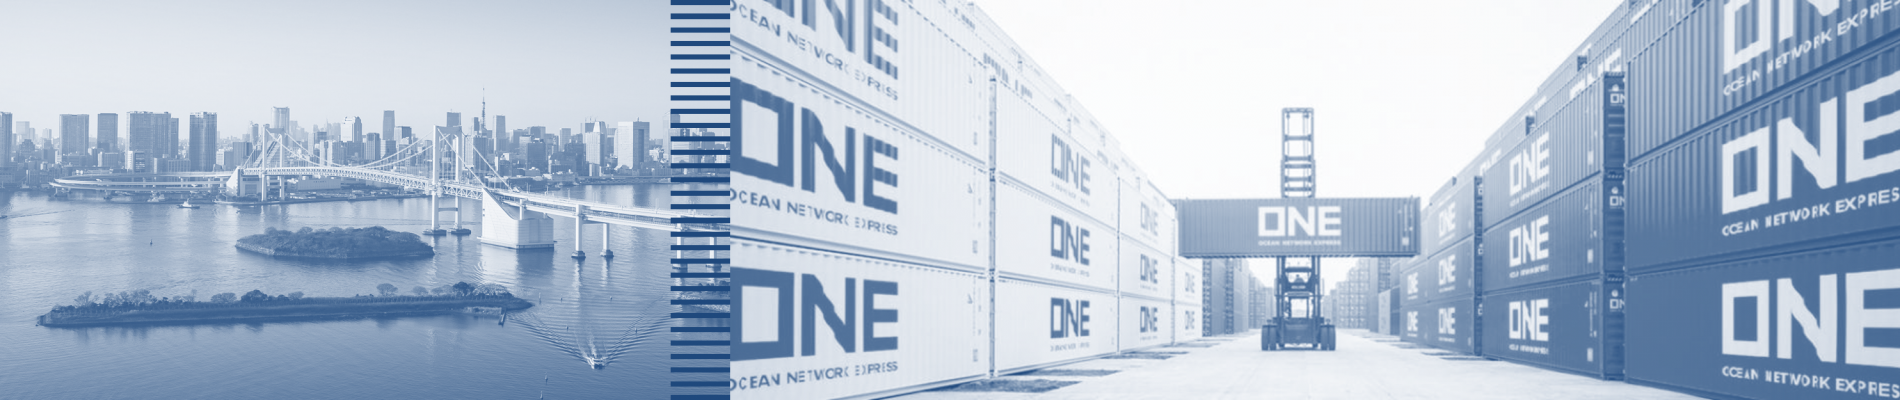 ONE AT PORT - FAST, RELIABLE SERVICES BY TRANSTERRA LOGISTICS BULGARIA